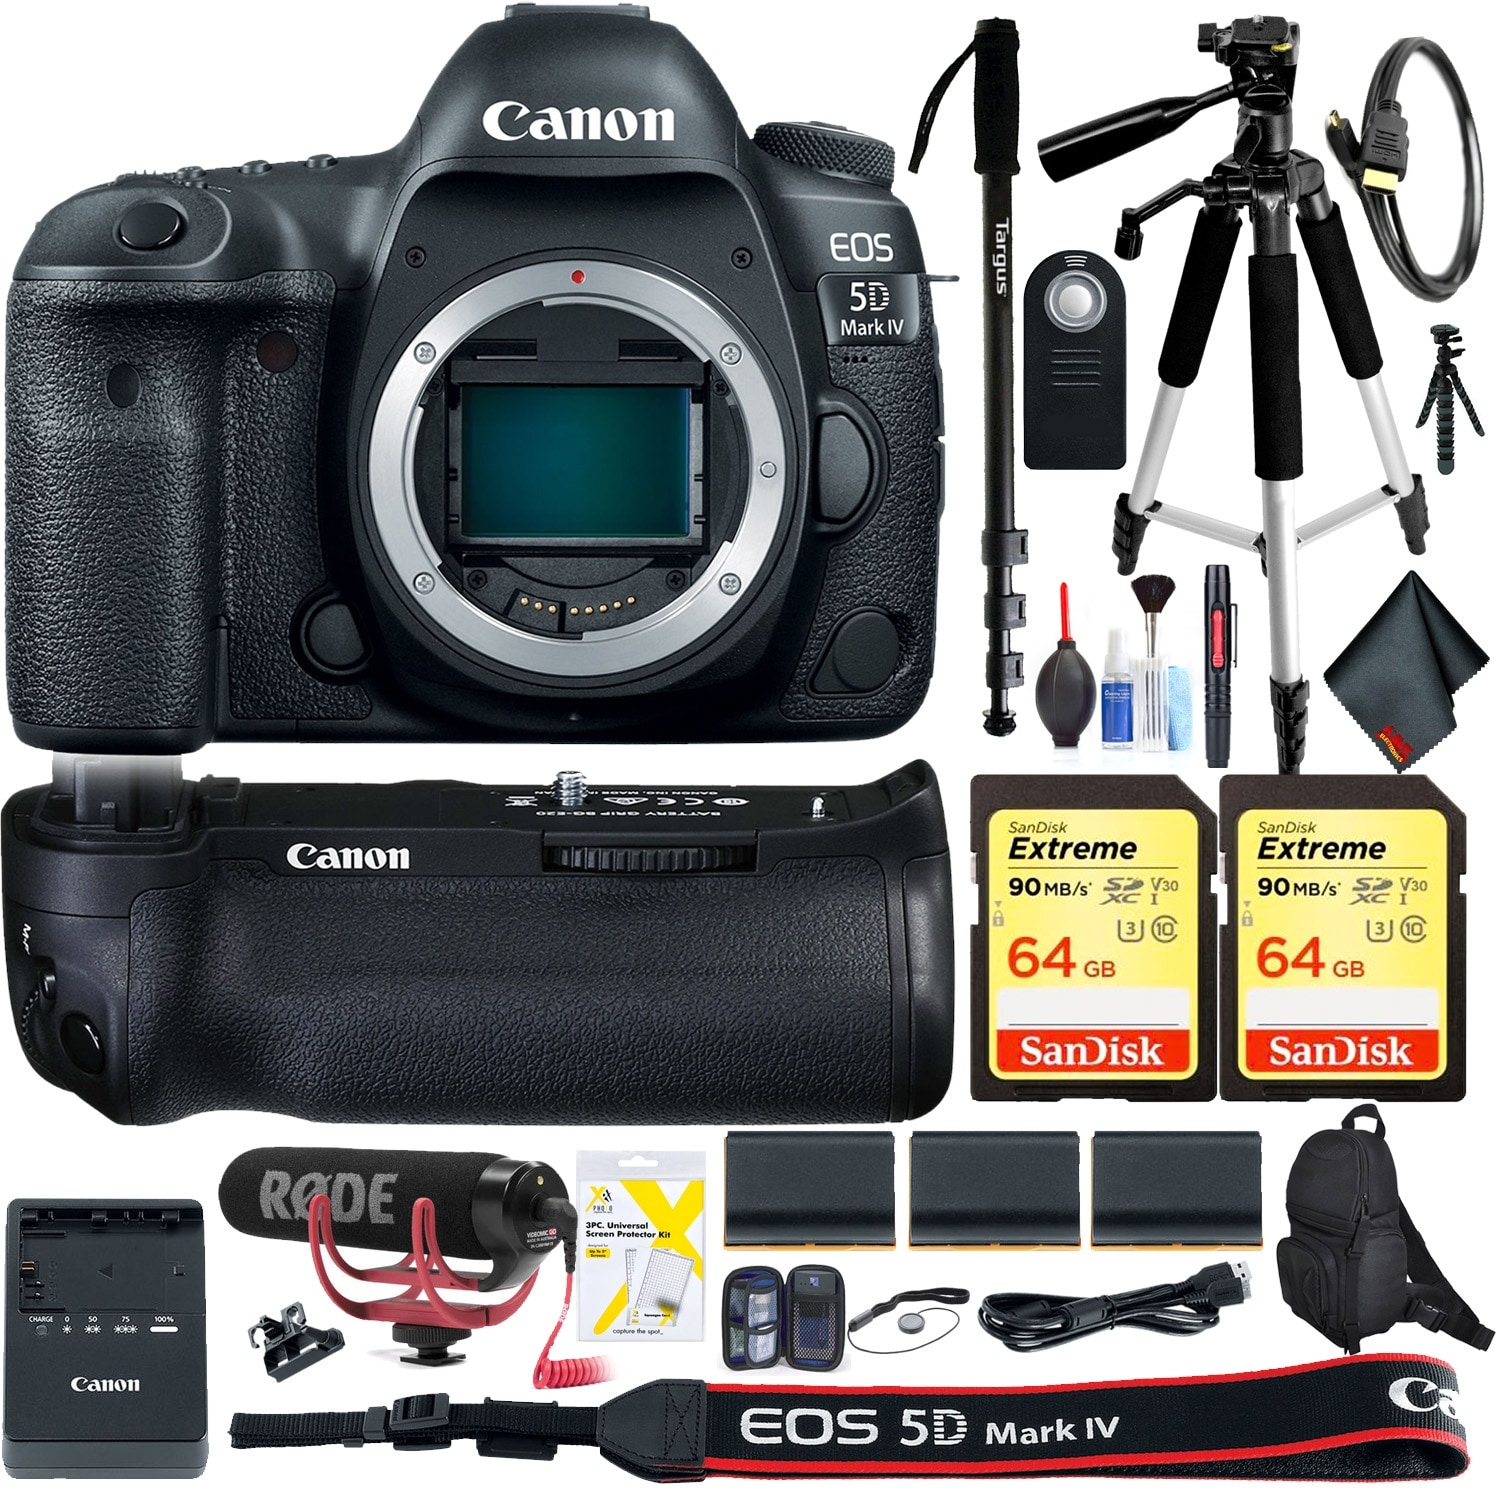 Shop Canon Eos 5d Mark Iv Dslr Camera Body Only Accessory Kit Intl 4 Model Free Shipping Today 23124907